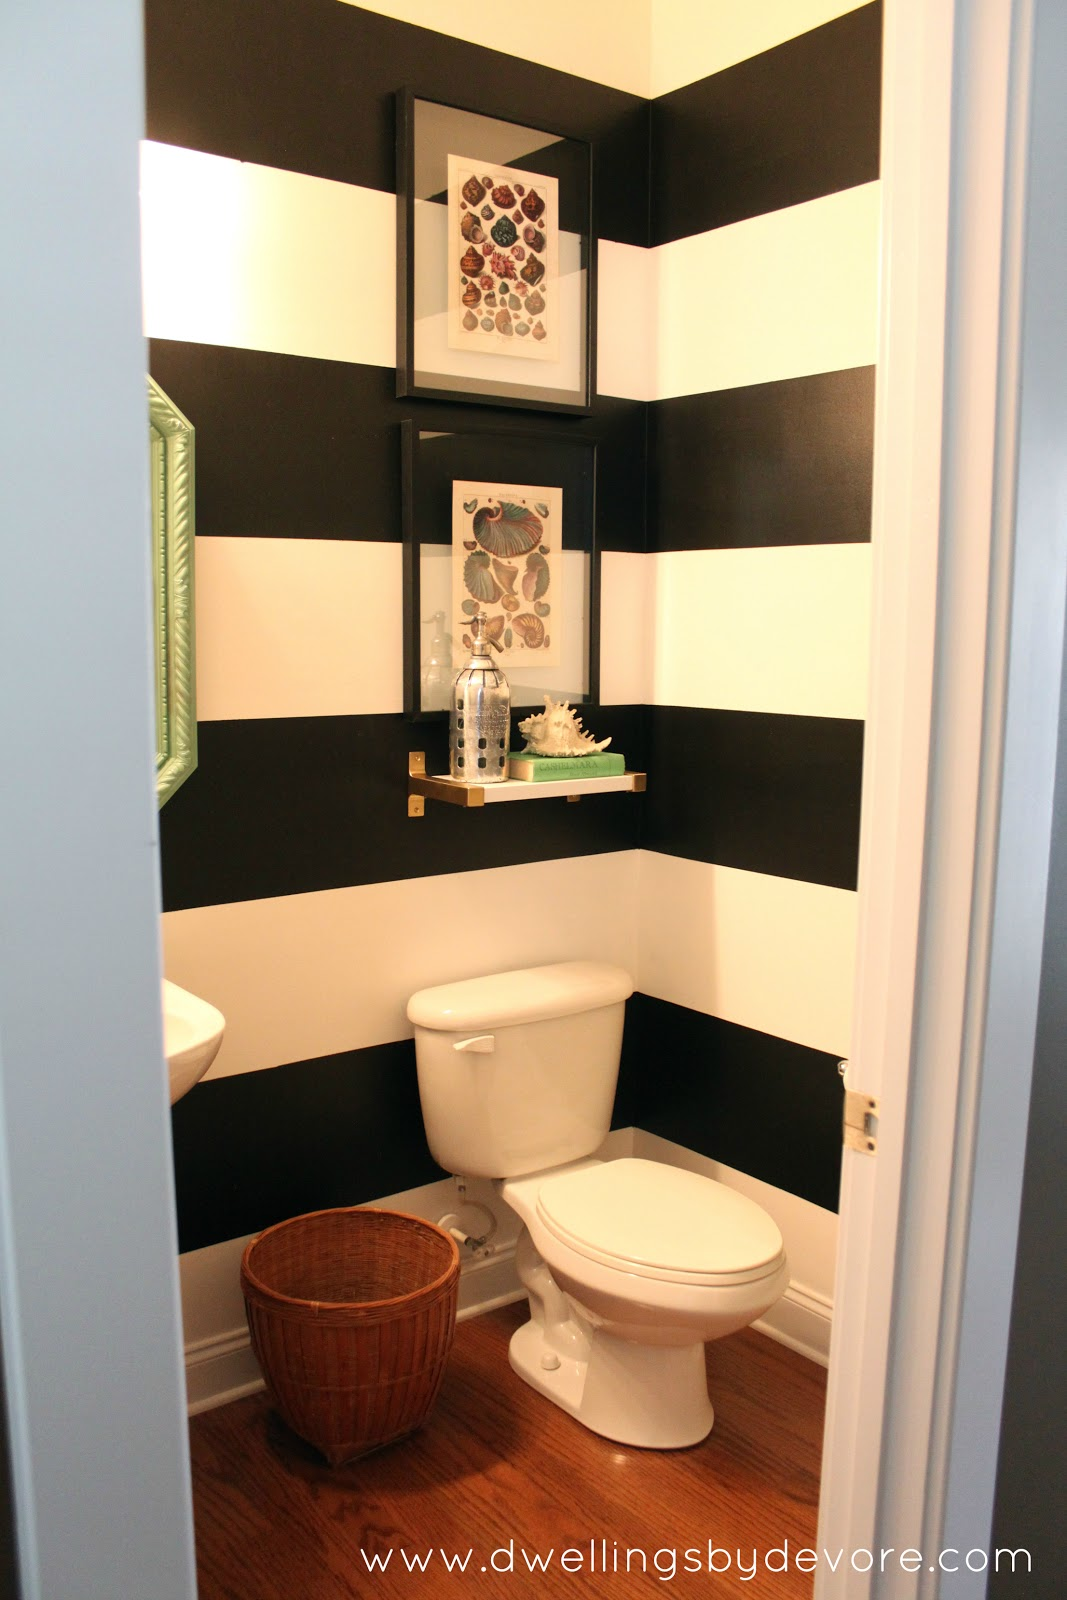 Dwellings By Devore Black And White Striped Bathroom